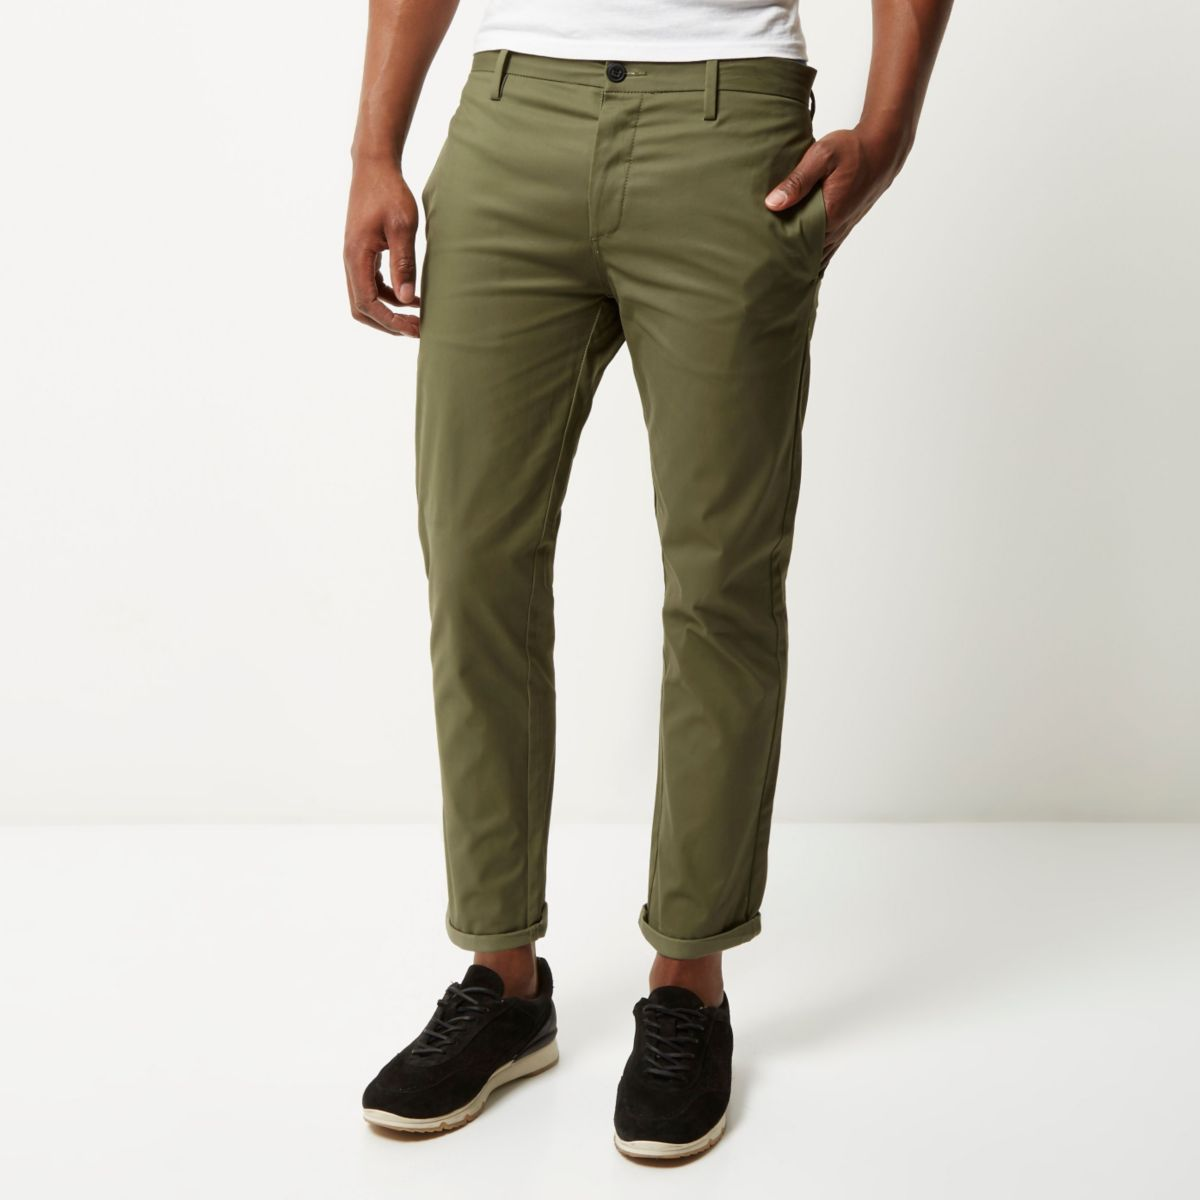 Green stretch cropped slim chino pants